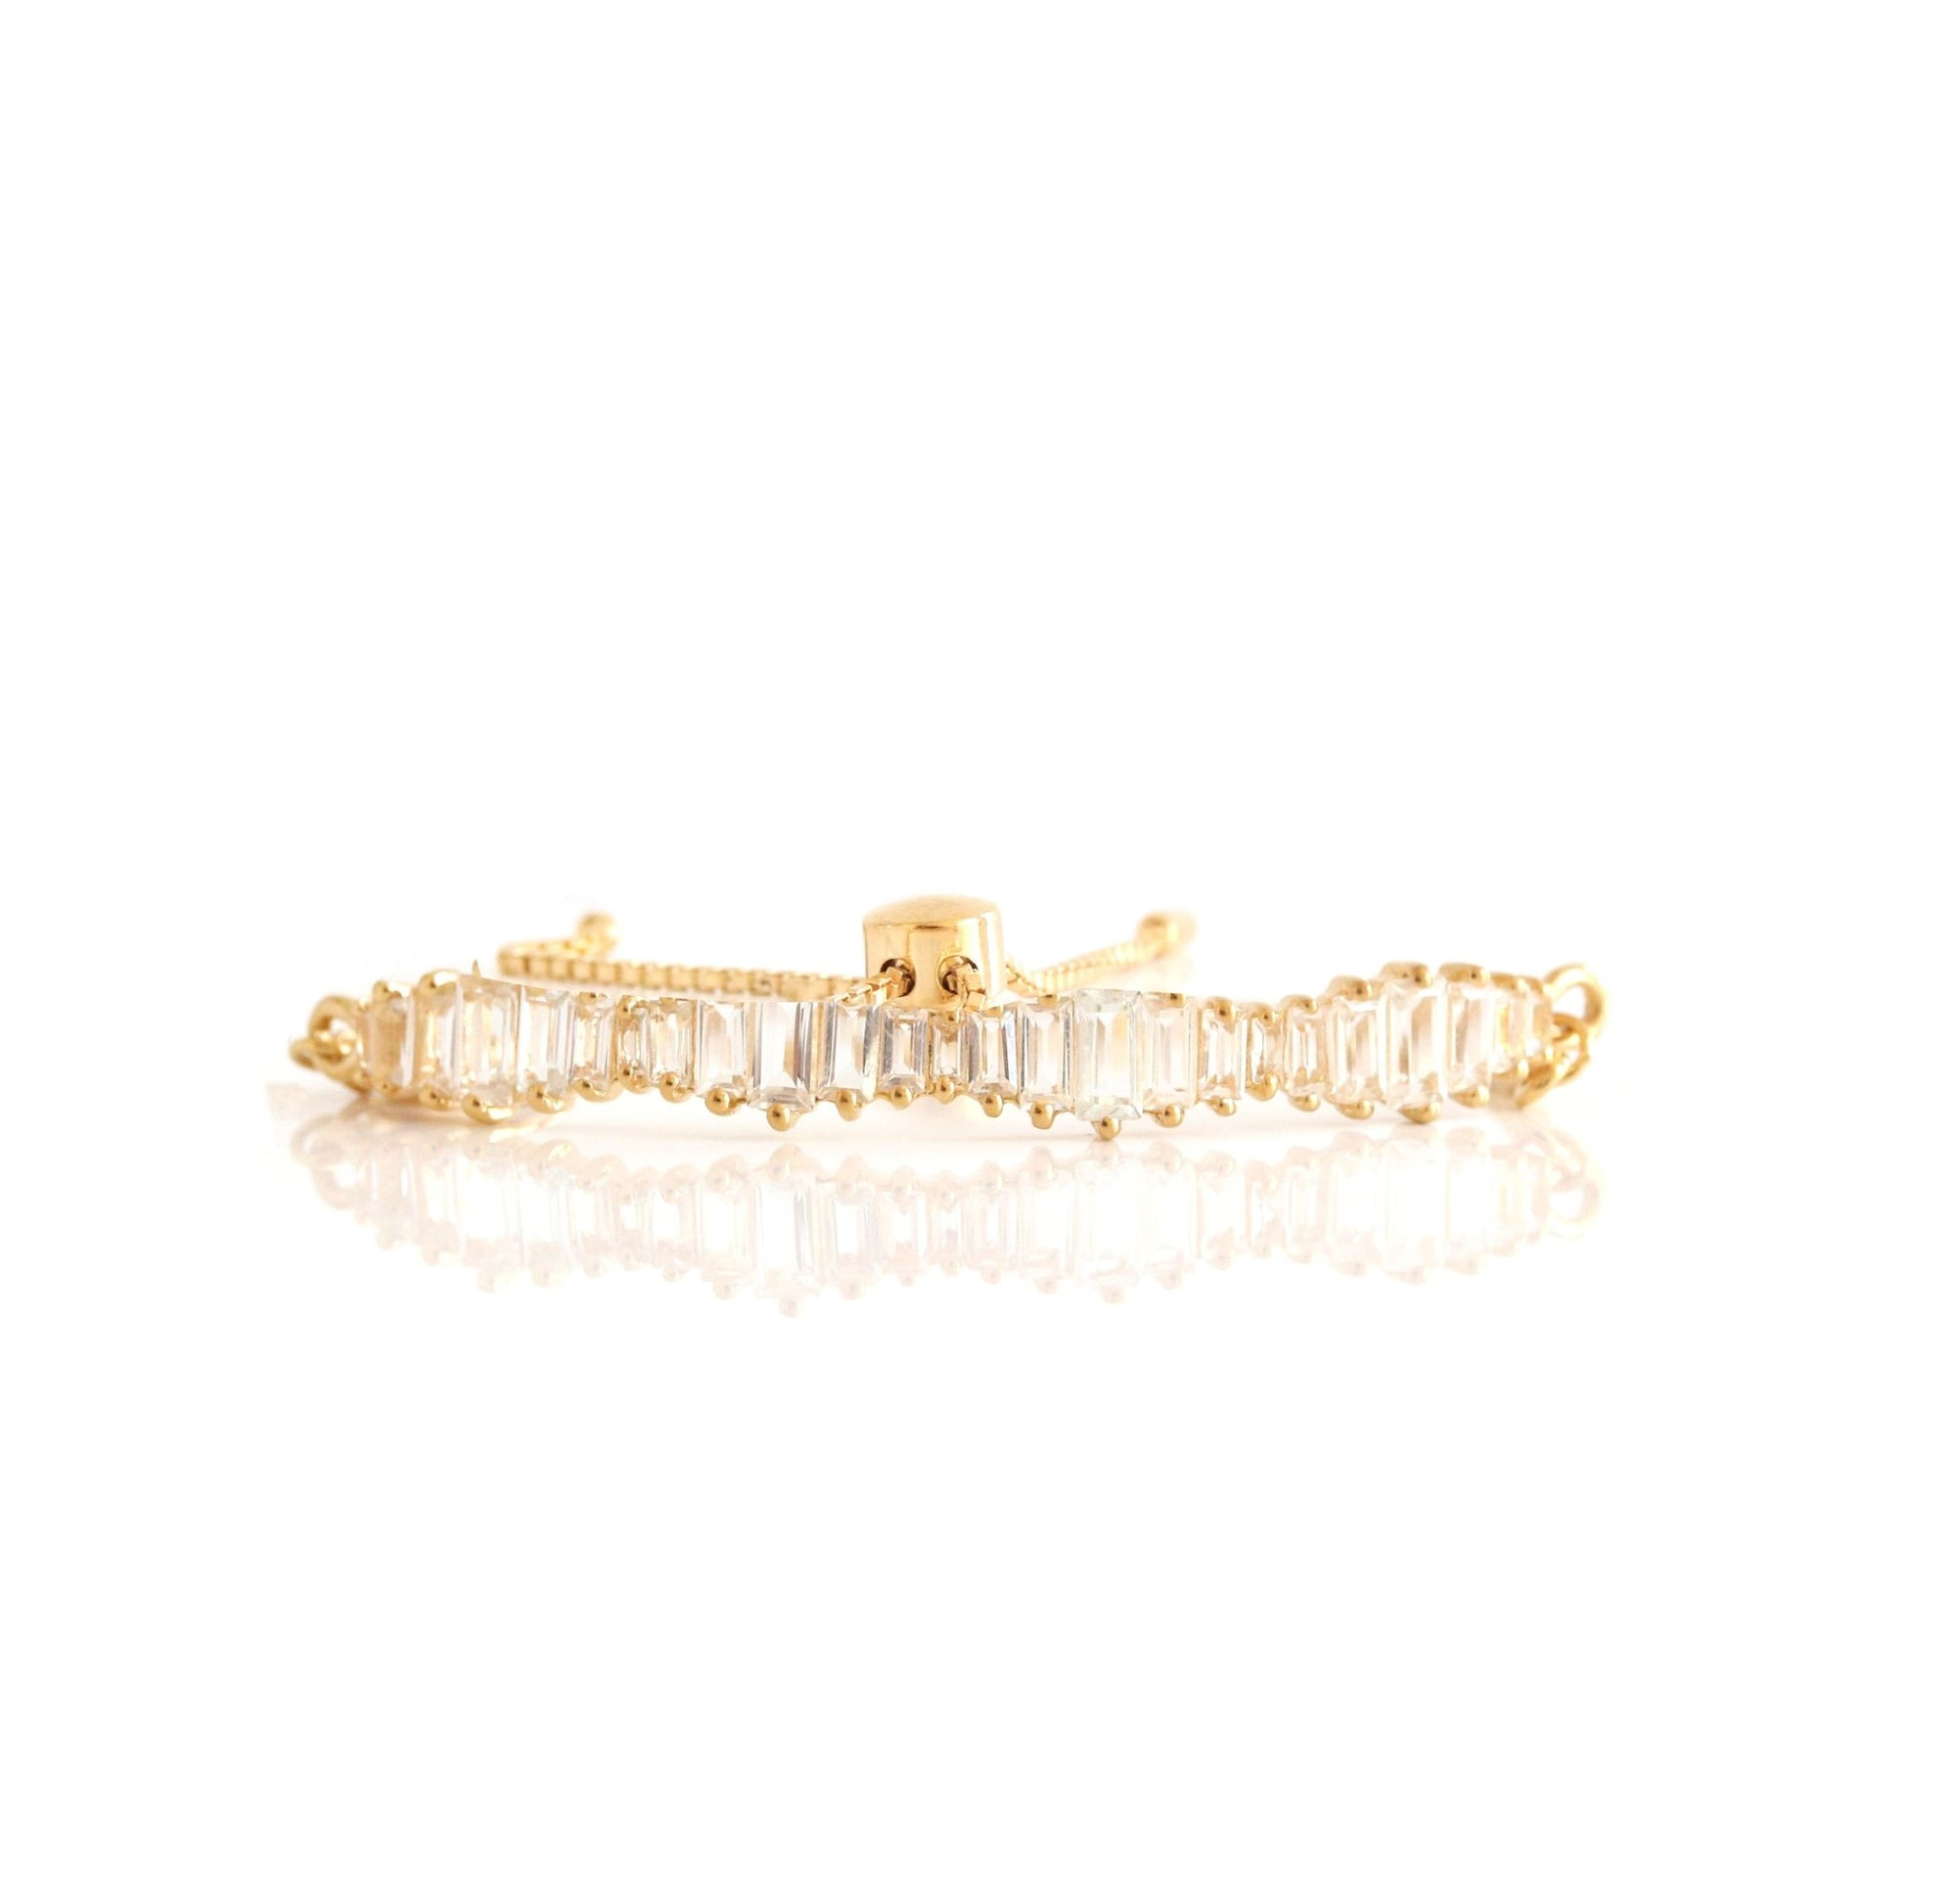 Loyal Waterfall Adjustable Bracelet - White Topaz & Gold - SO PRETTY CARA COTTER